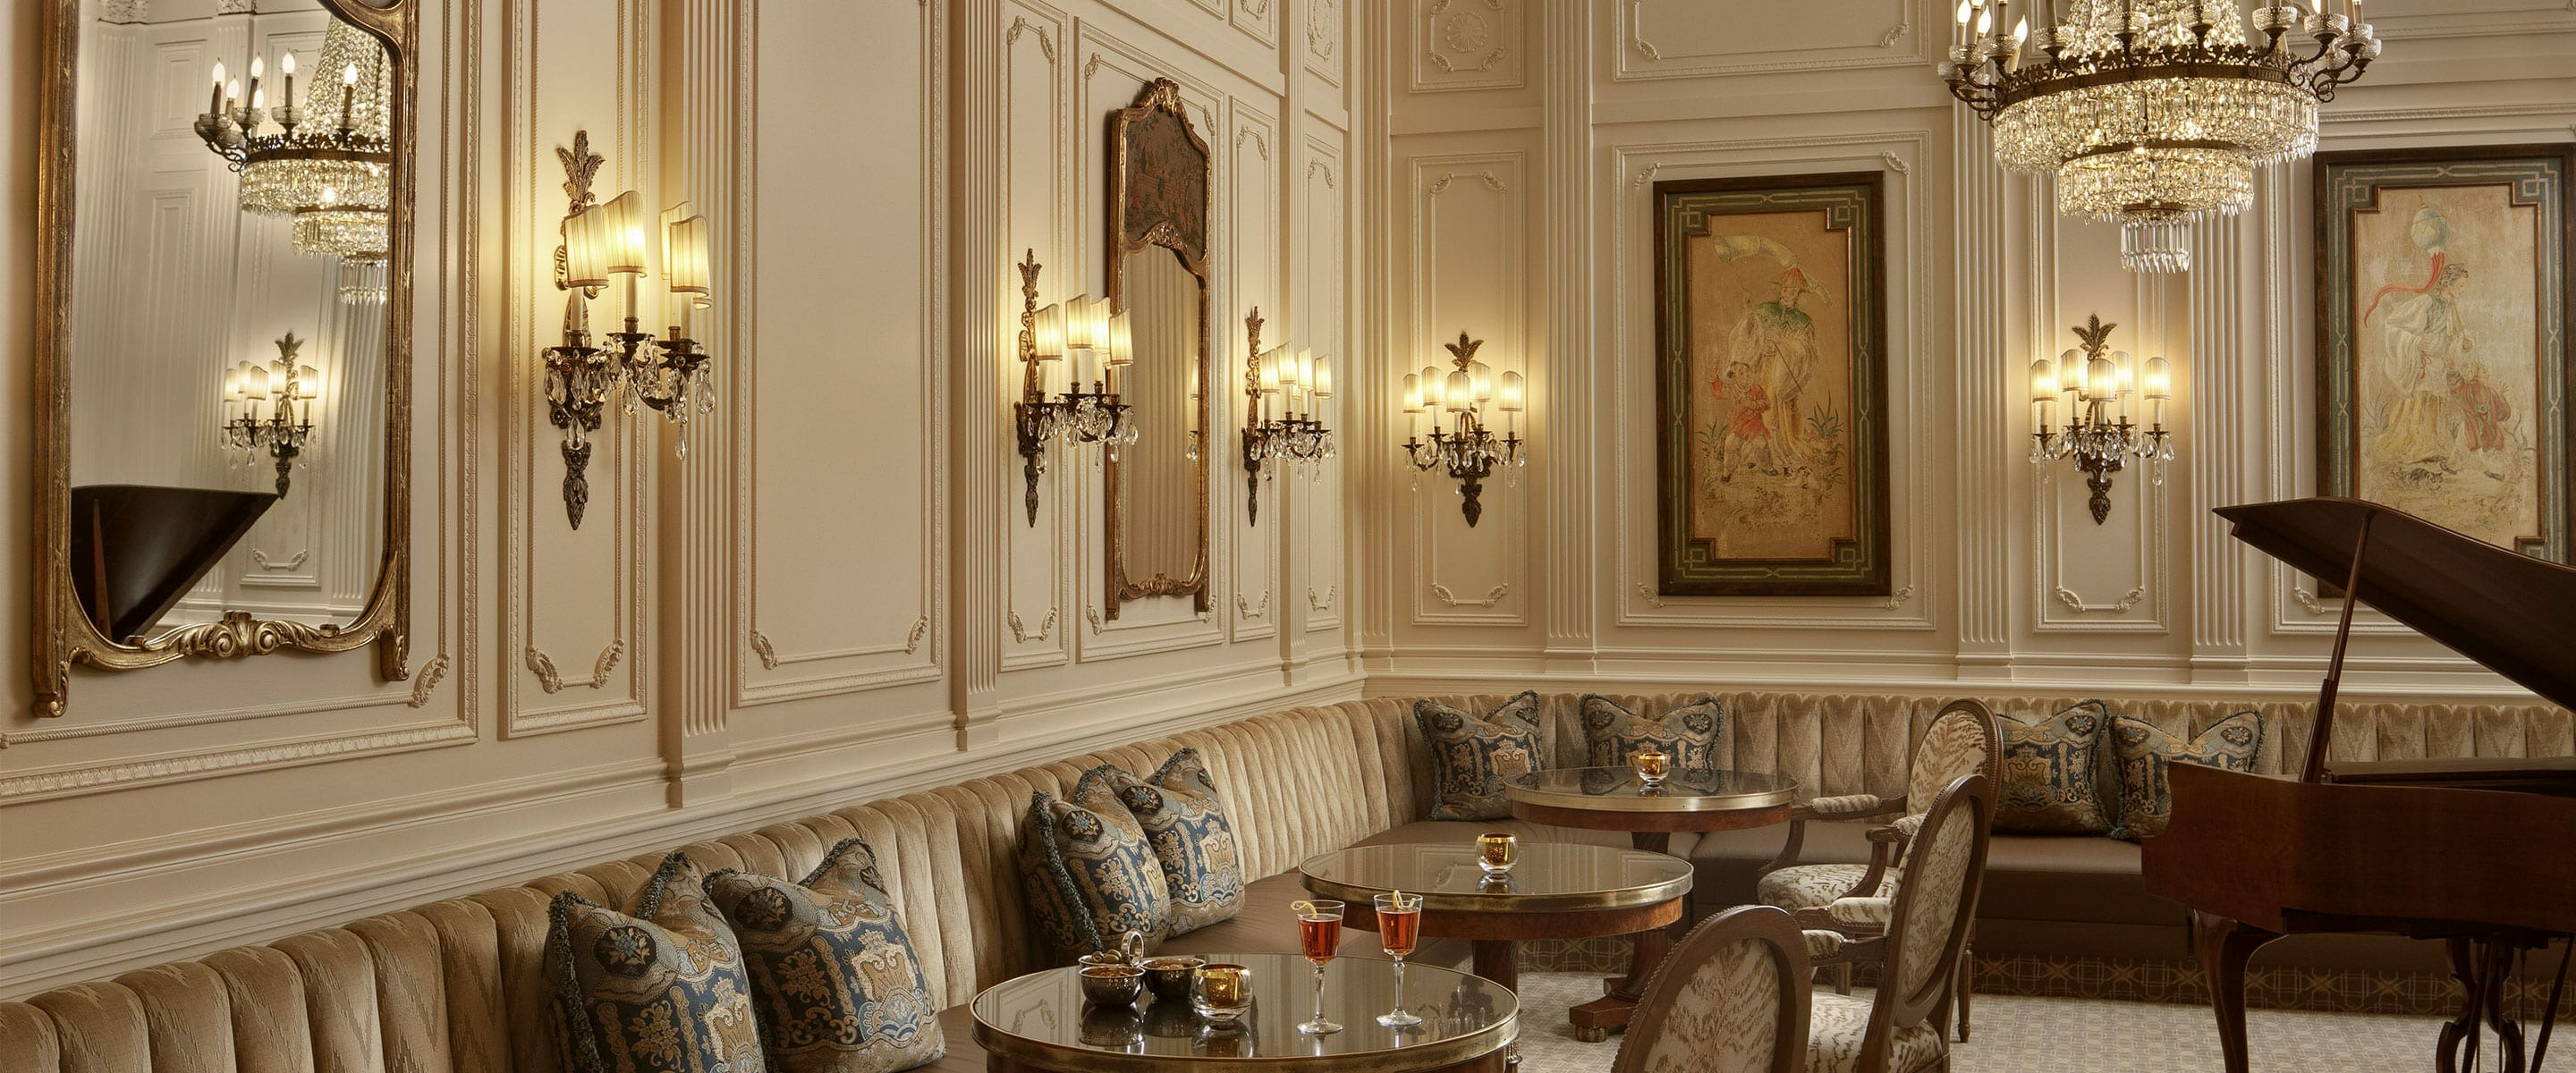 Plaza Bar, elegant room with piano and tables.